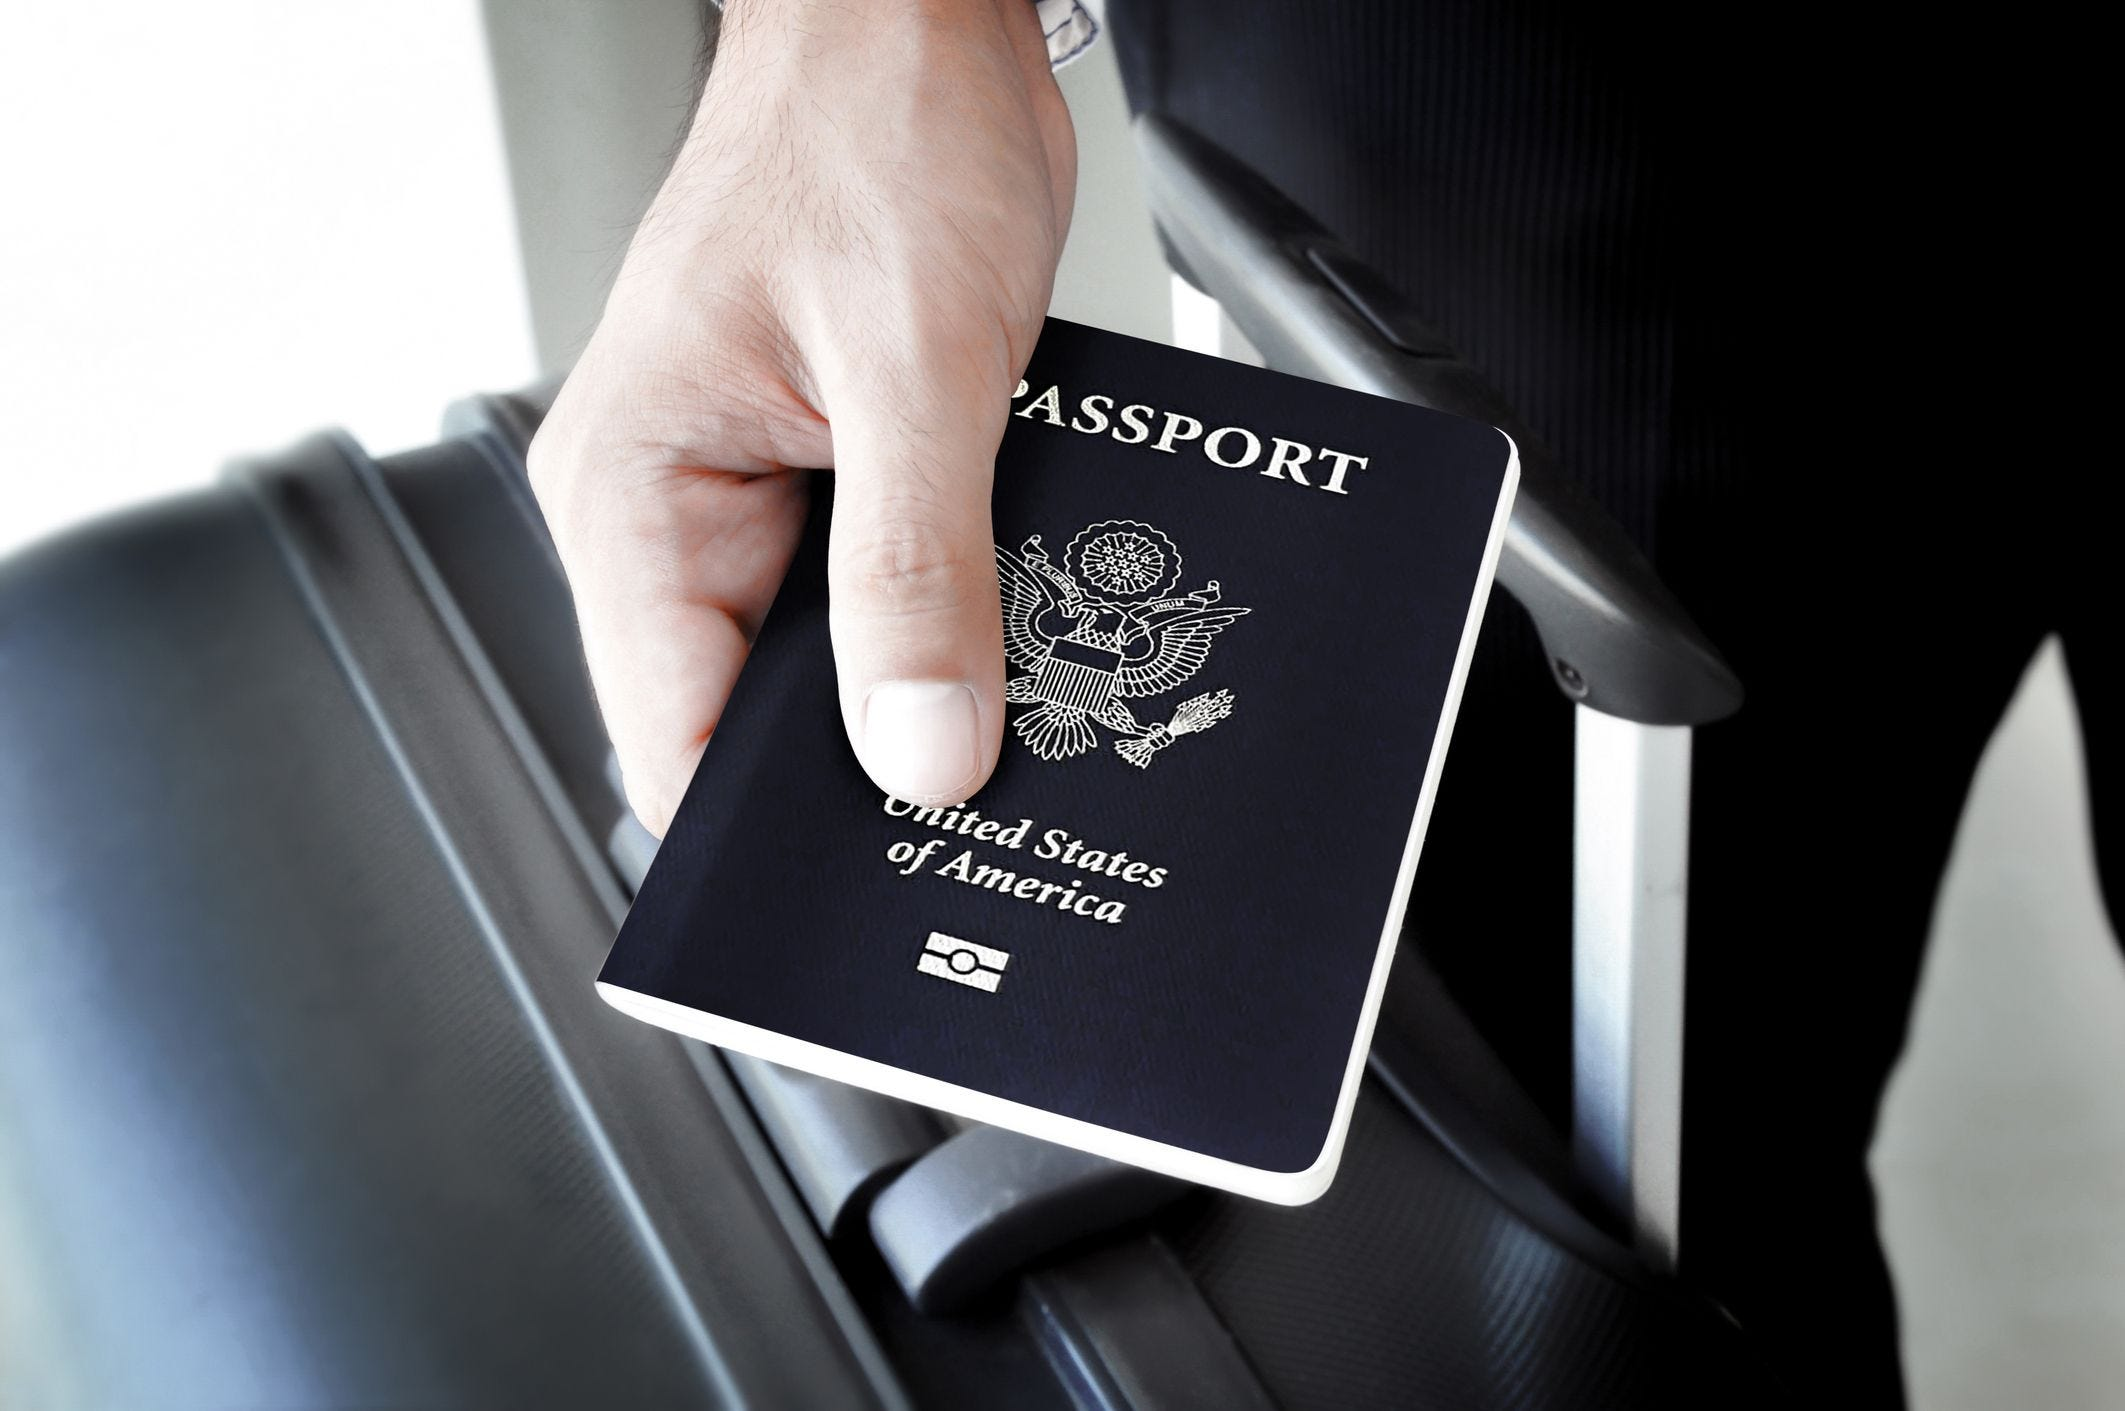 Rise in price of the passport in 2018 85